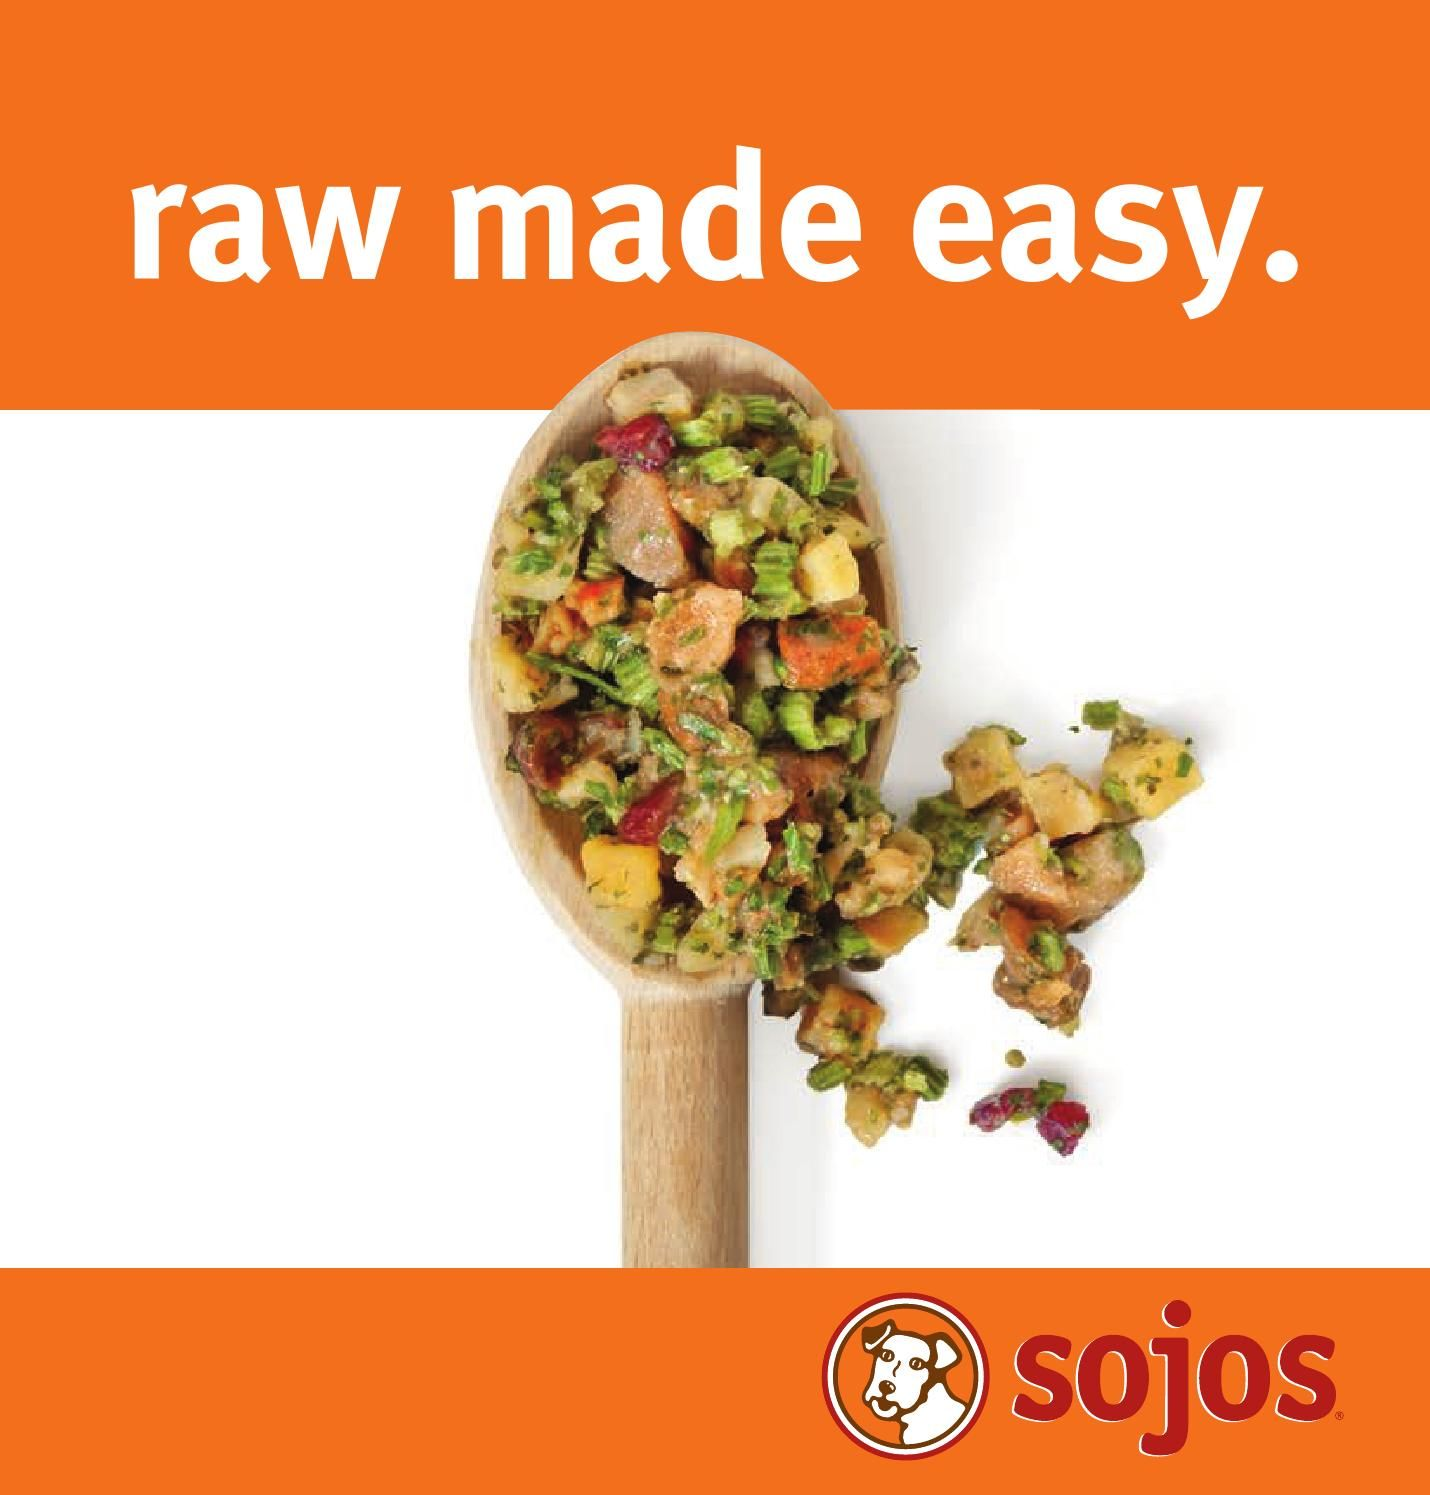 Sojos, the sweet spot between the nutrition of raw and the convenience of kibble. Raw dog food, made easy | sojos.com